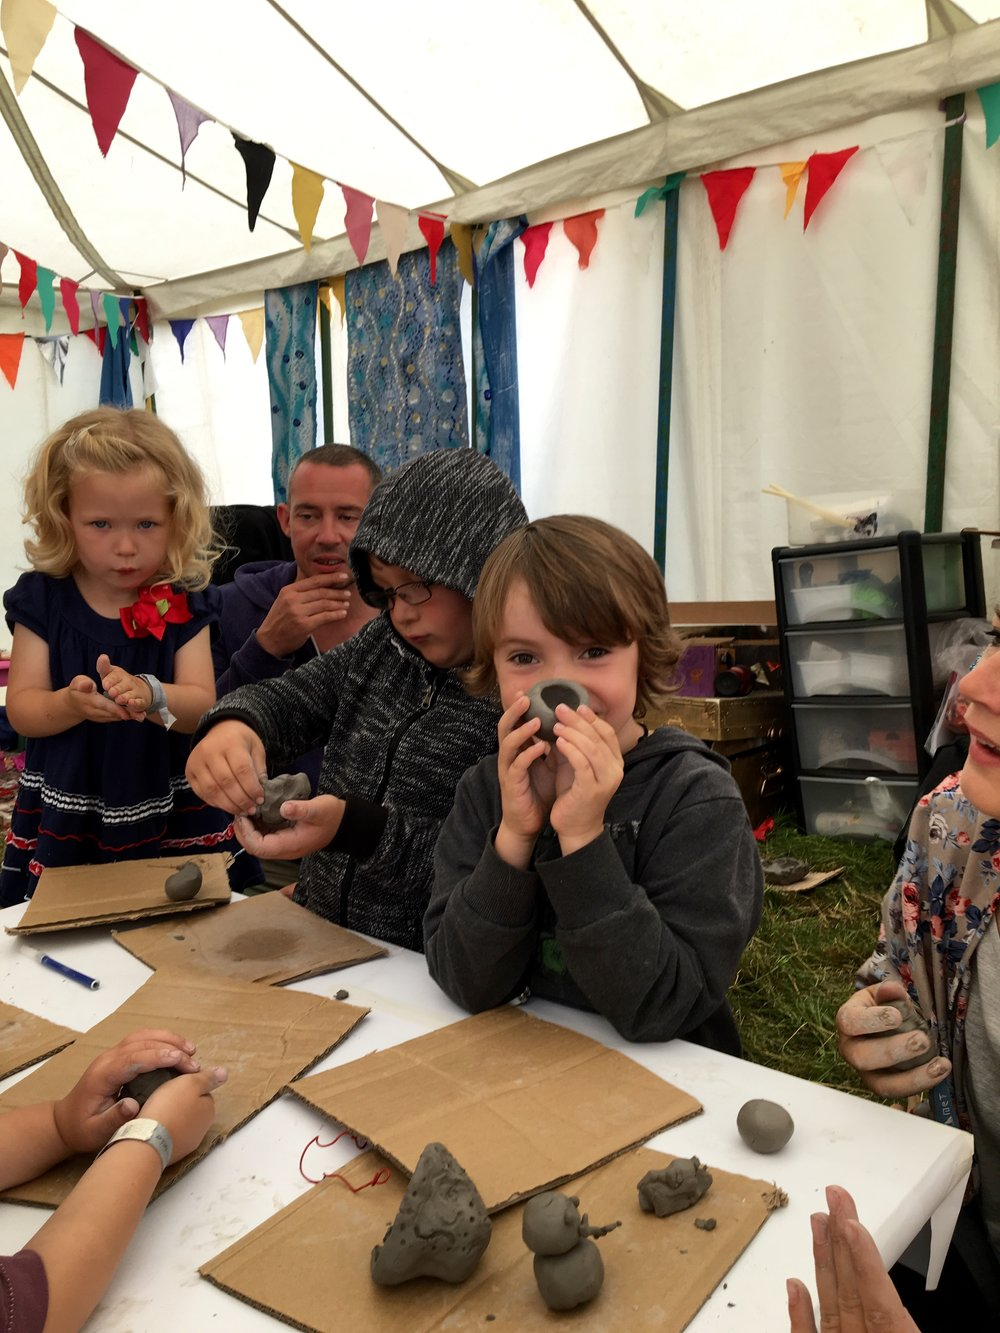 Making clay pots in the craft tent. (Not sure they made it home though... ssh)